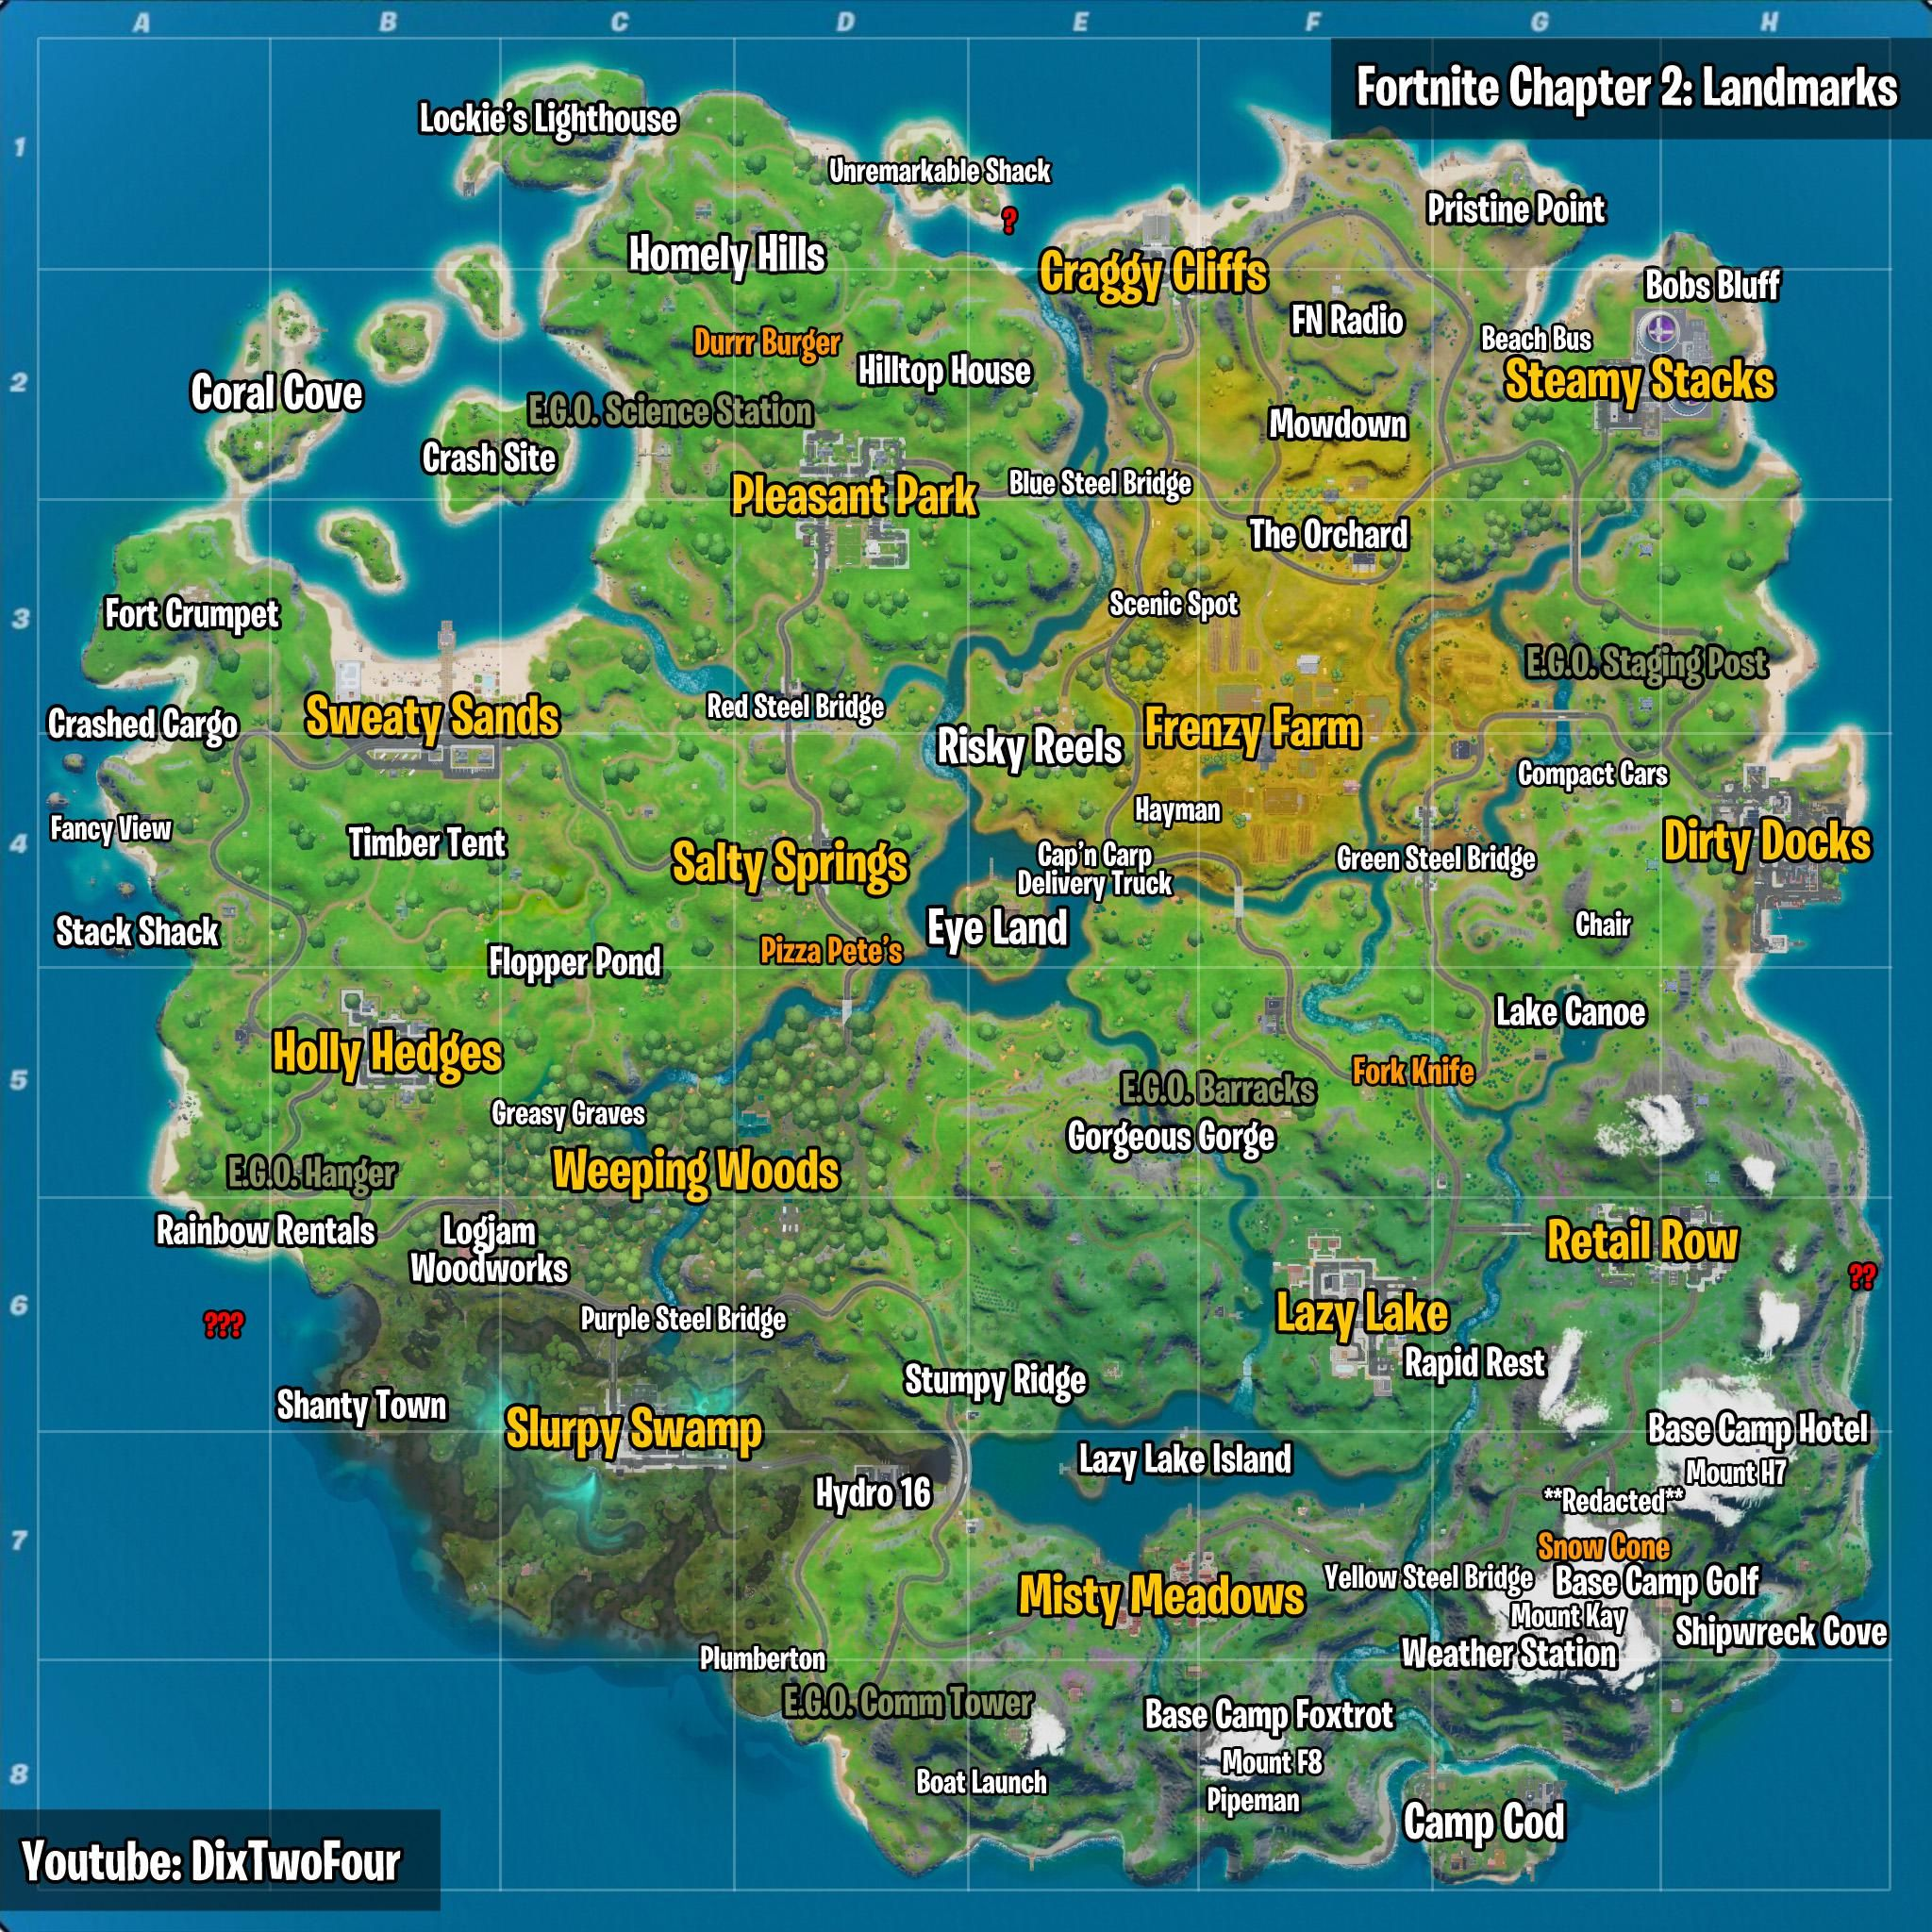 Fortnite Landmarks All Map Locations Visit Landmarks In Fortnite In A Single Match Heres The Locations Of All The Landmarks In Fortnite Science Stations Map